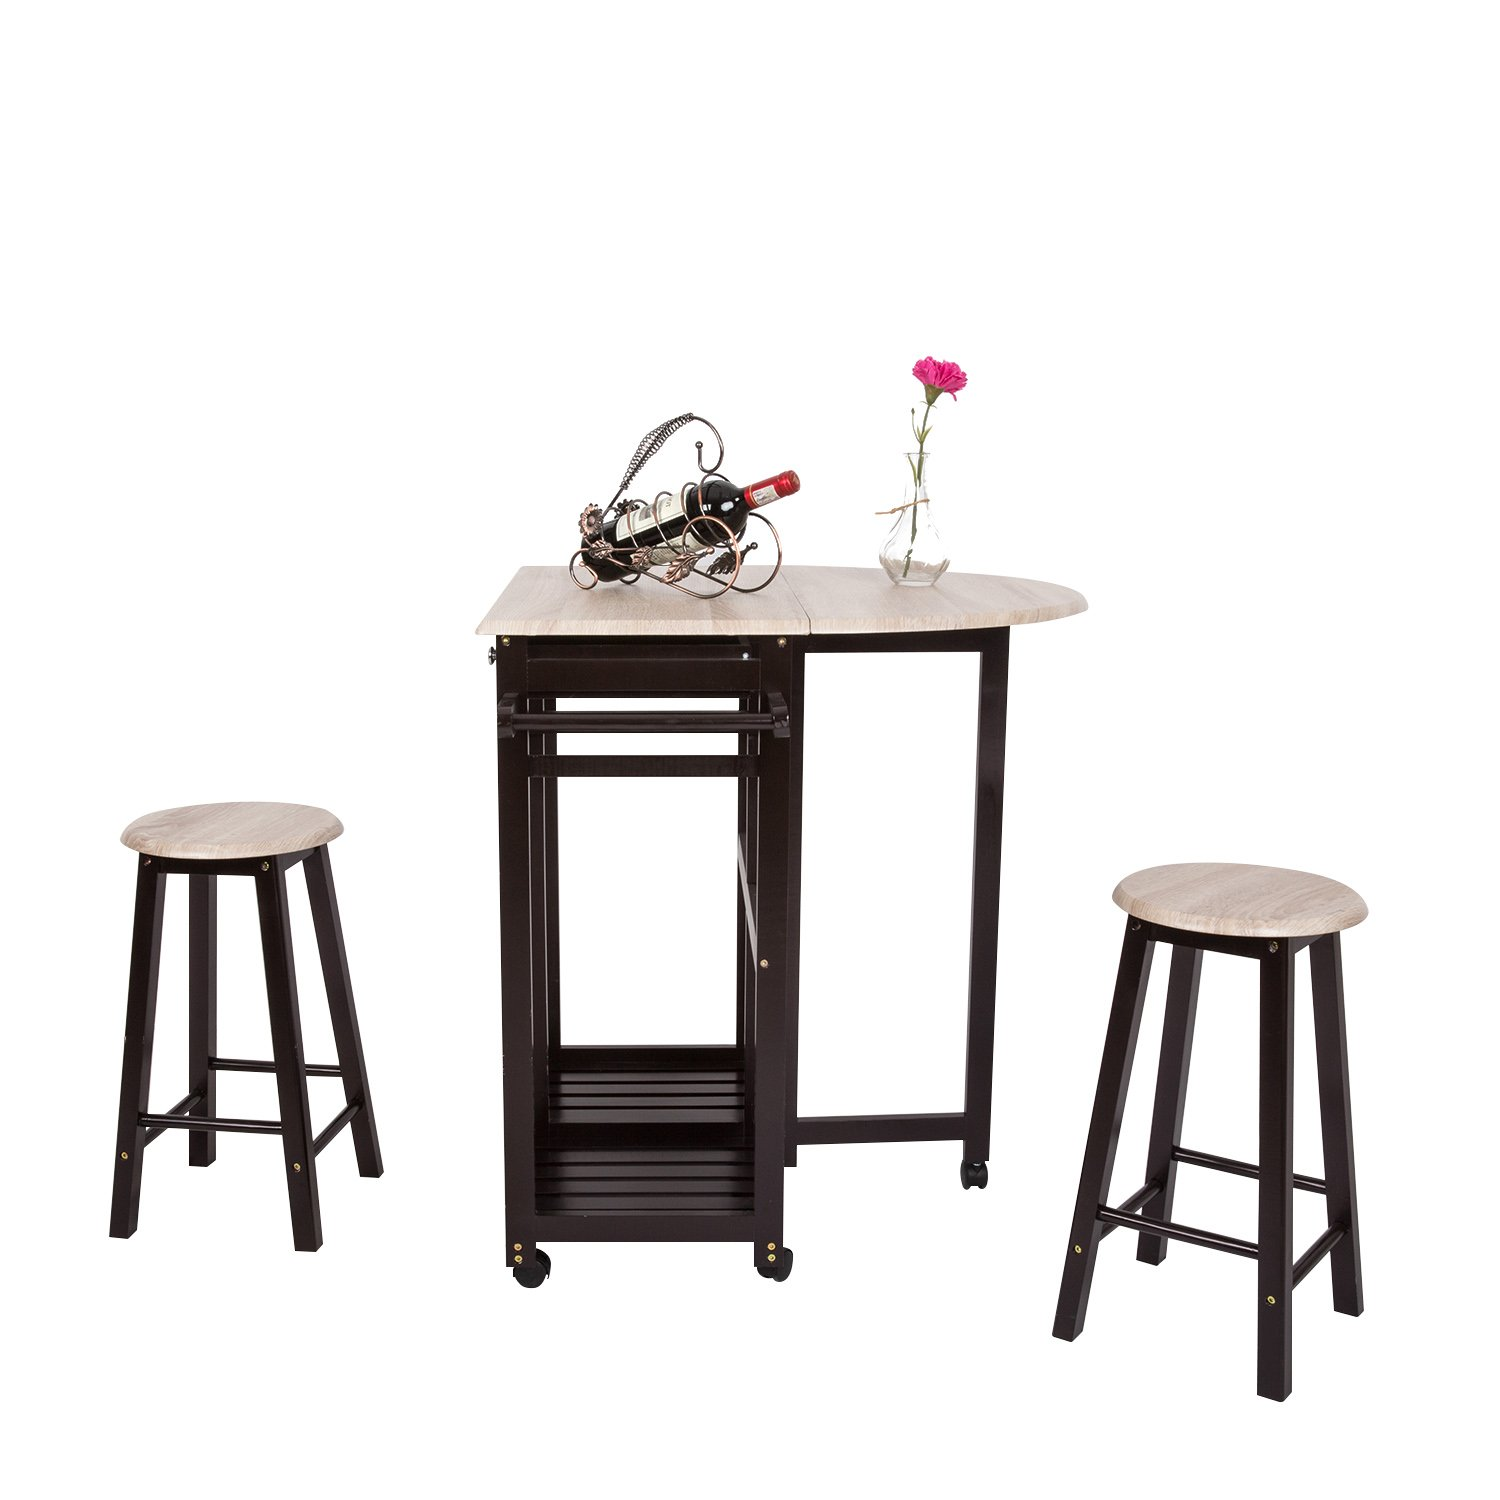 3PCS Dinning Set Table Rolling Kitchen Island Trolley Cart Set Breakfast Bar Cart Drop-Leaf Folding Table w/2 Stools and 2 Drawers